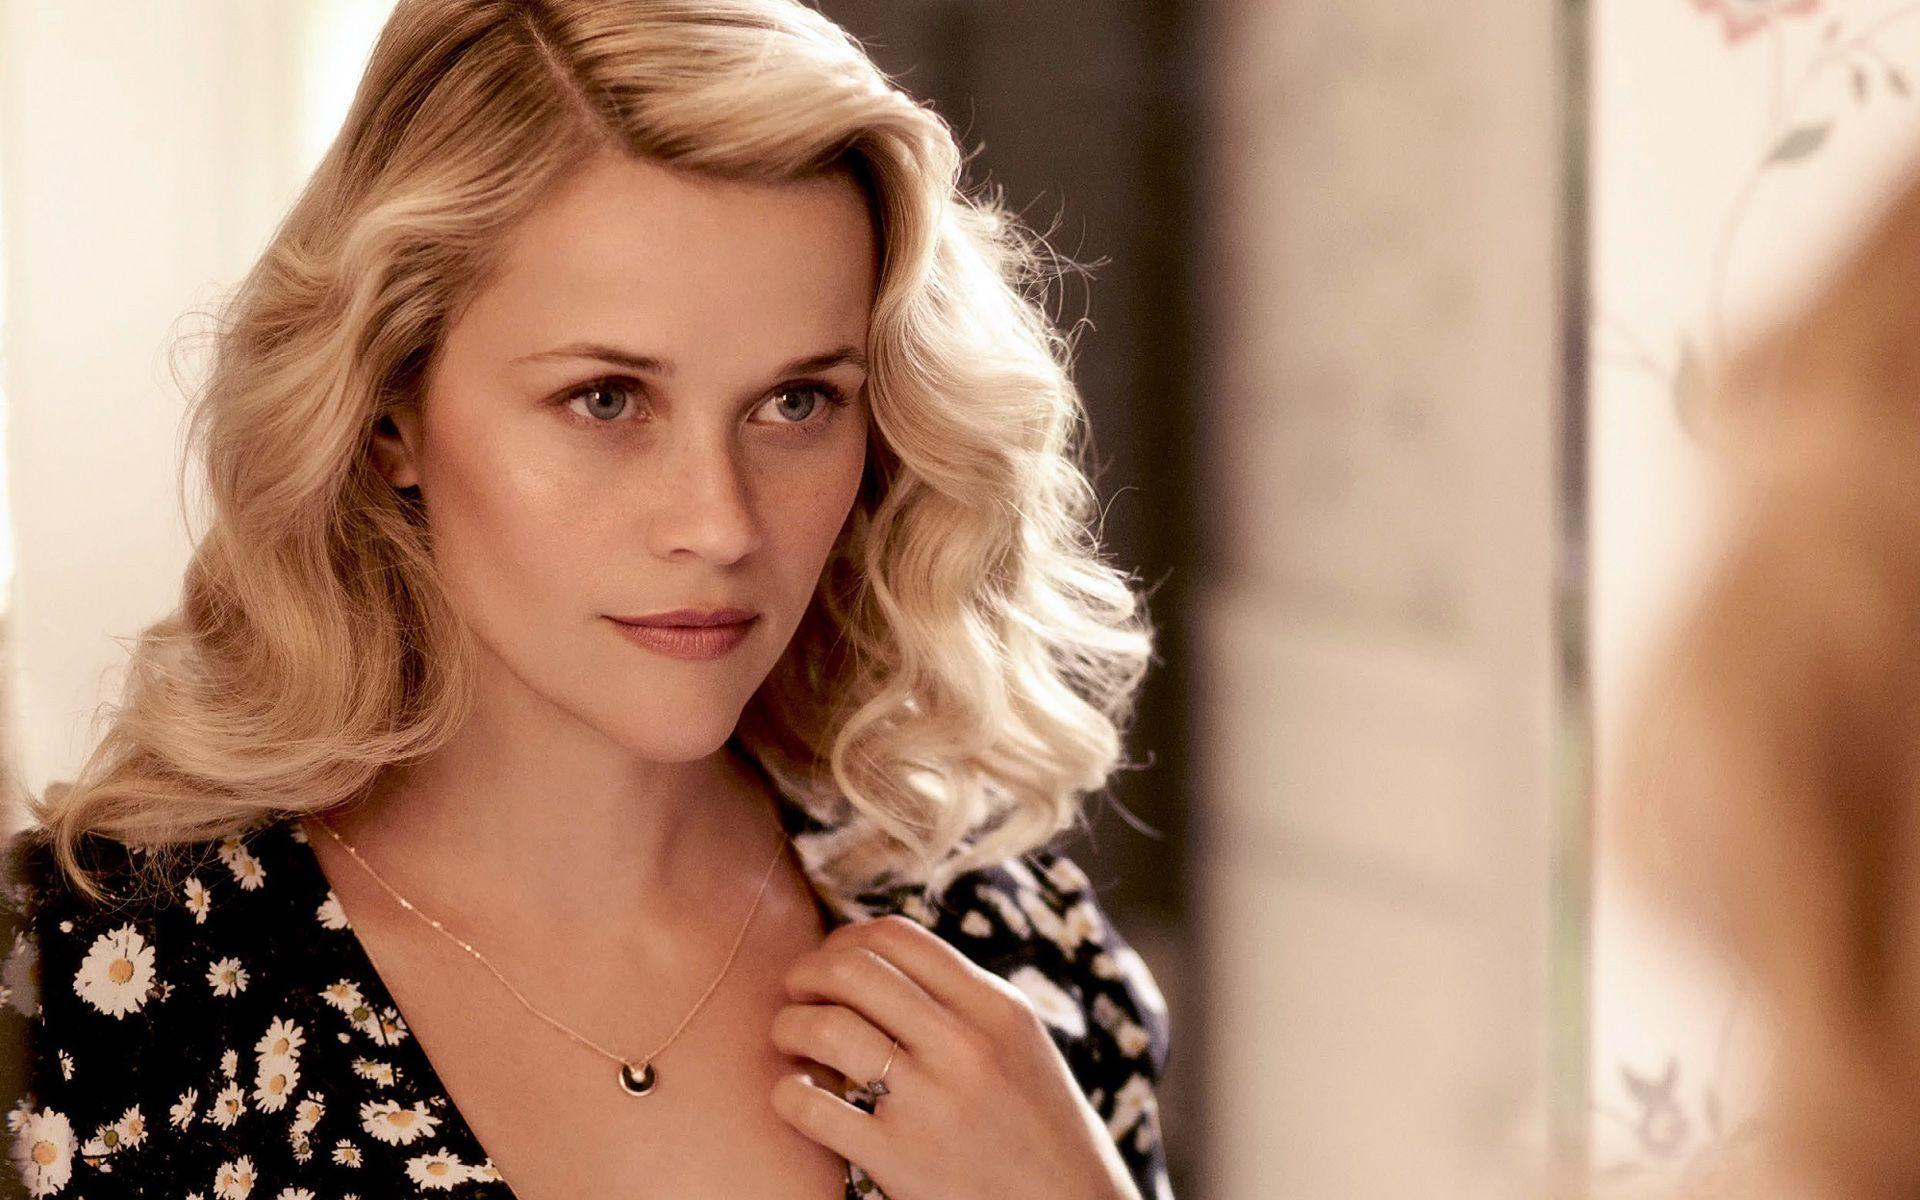 Reese Witherspoon 2015 Wallpapers | HD Wallpapers